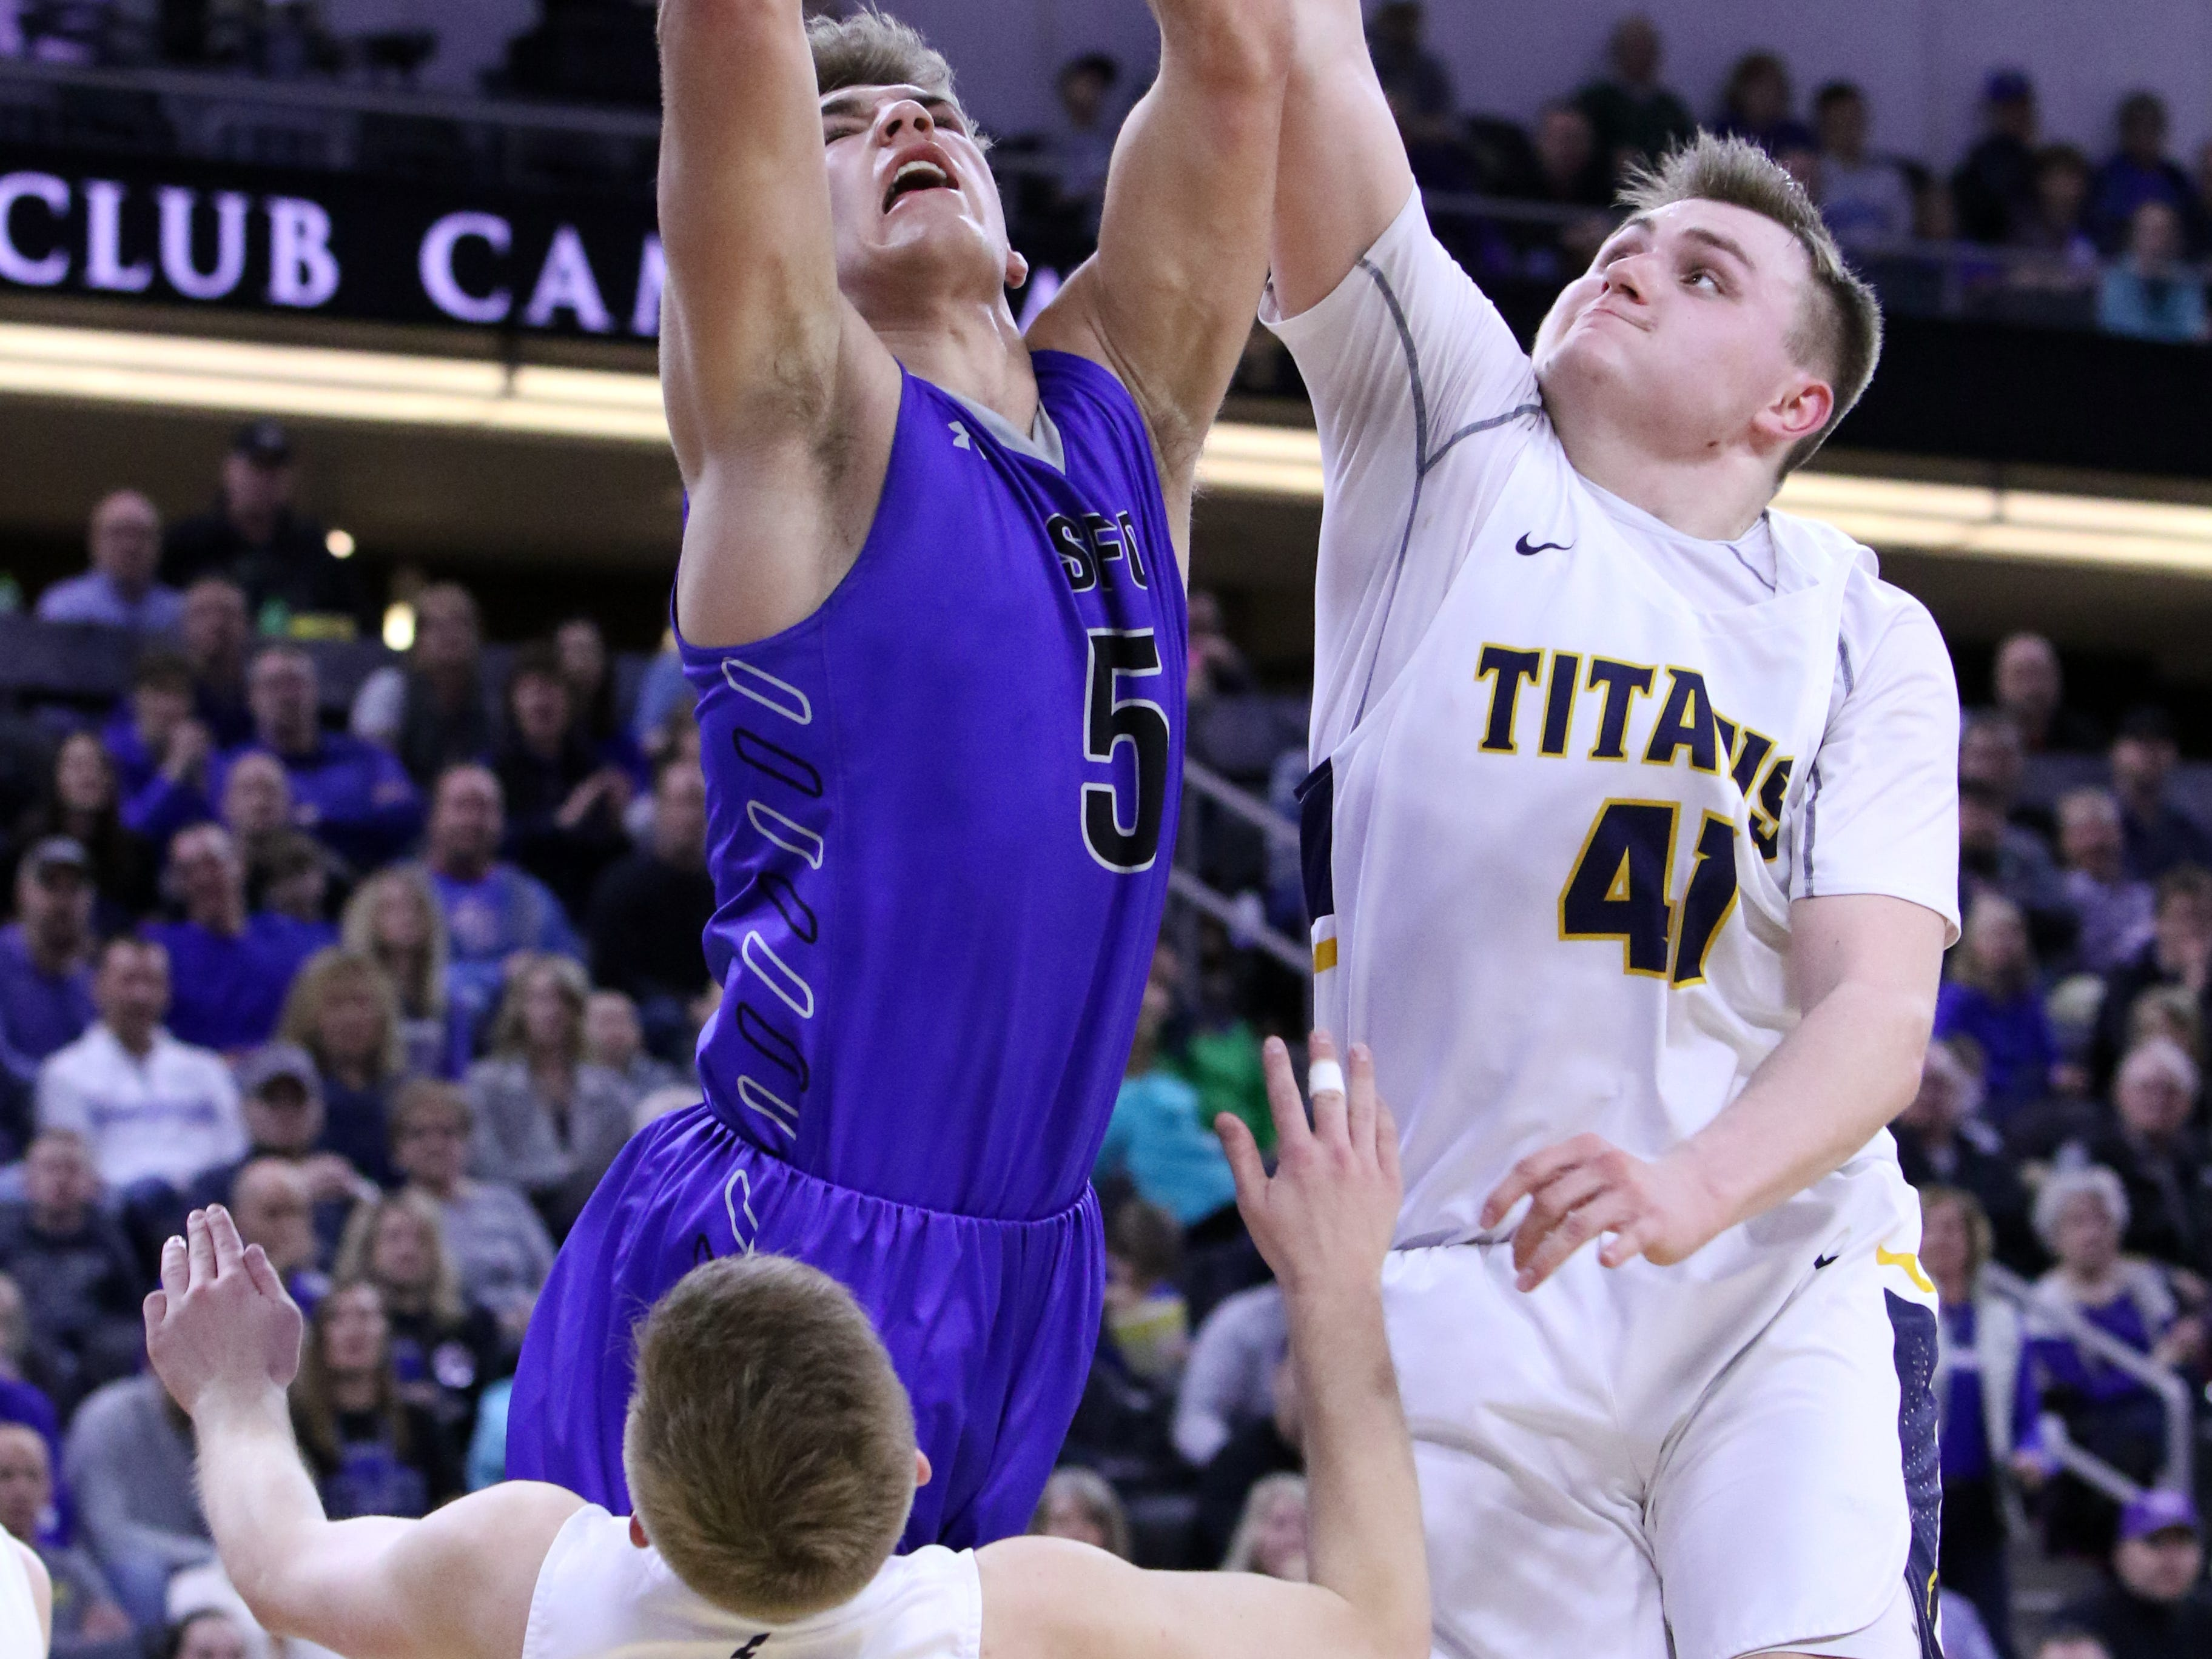 Mitchell Goodbary of Sioux Falls Christian goes up for a shot as Kaleb Joffer (41) and Mason Ritter defend during Saturday's Class A title game at the Premier Center.